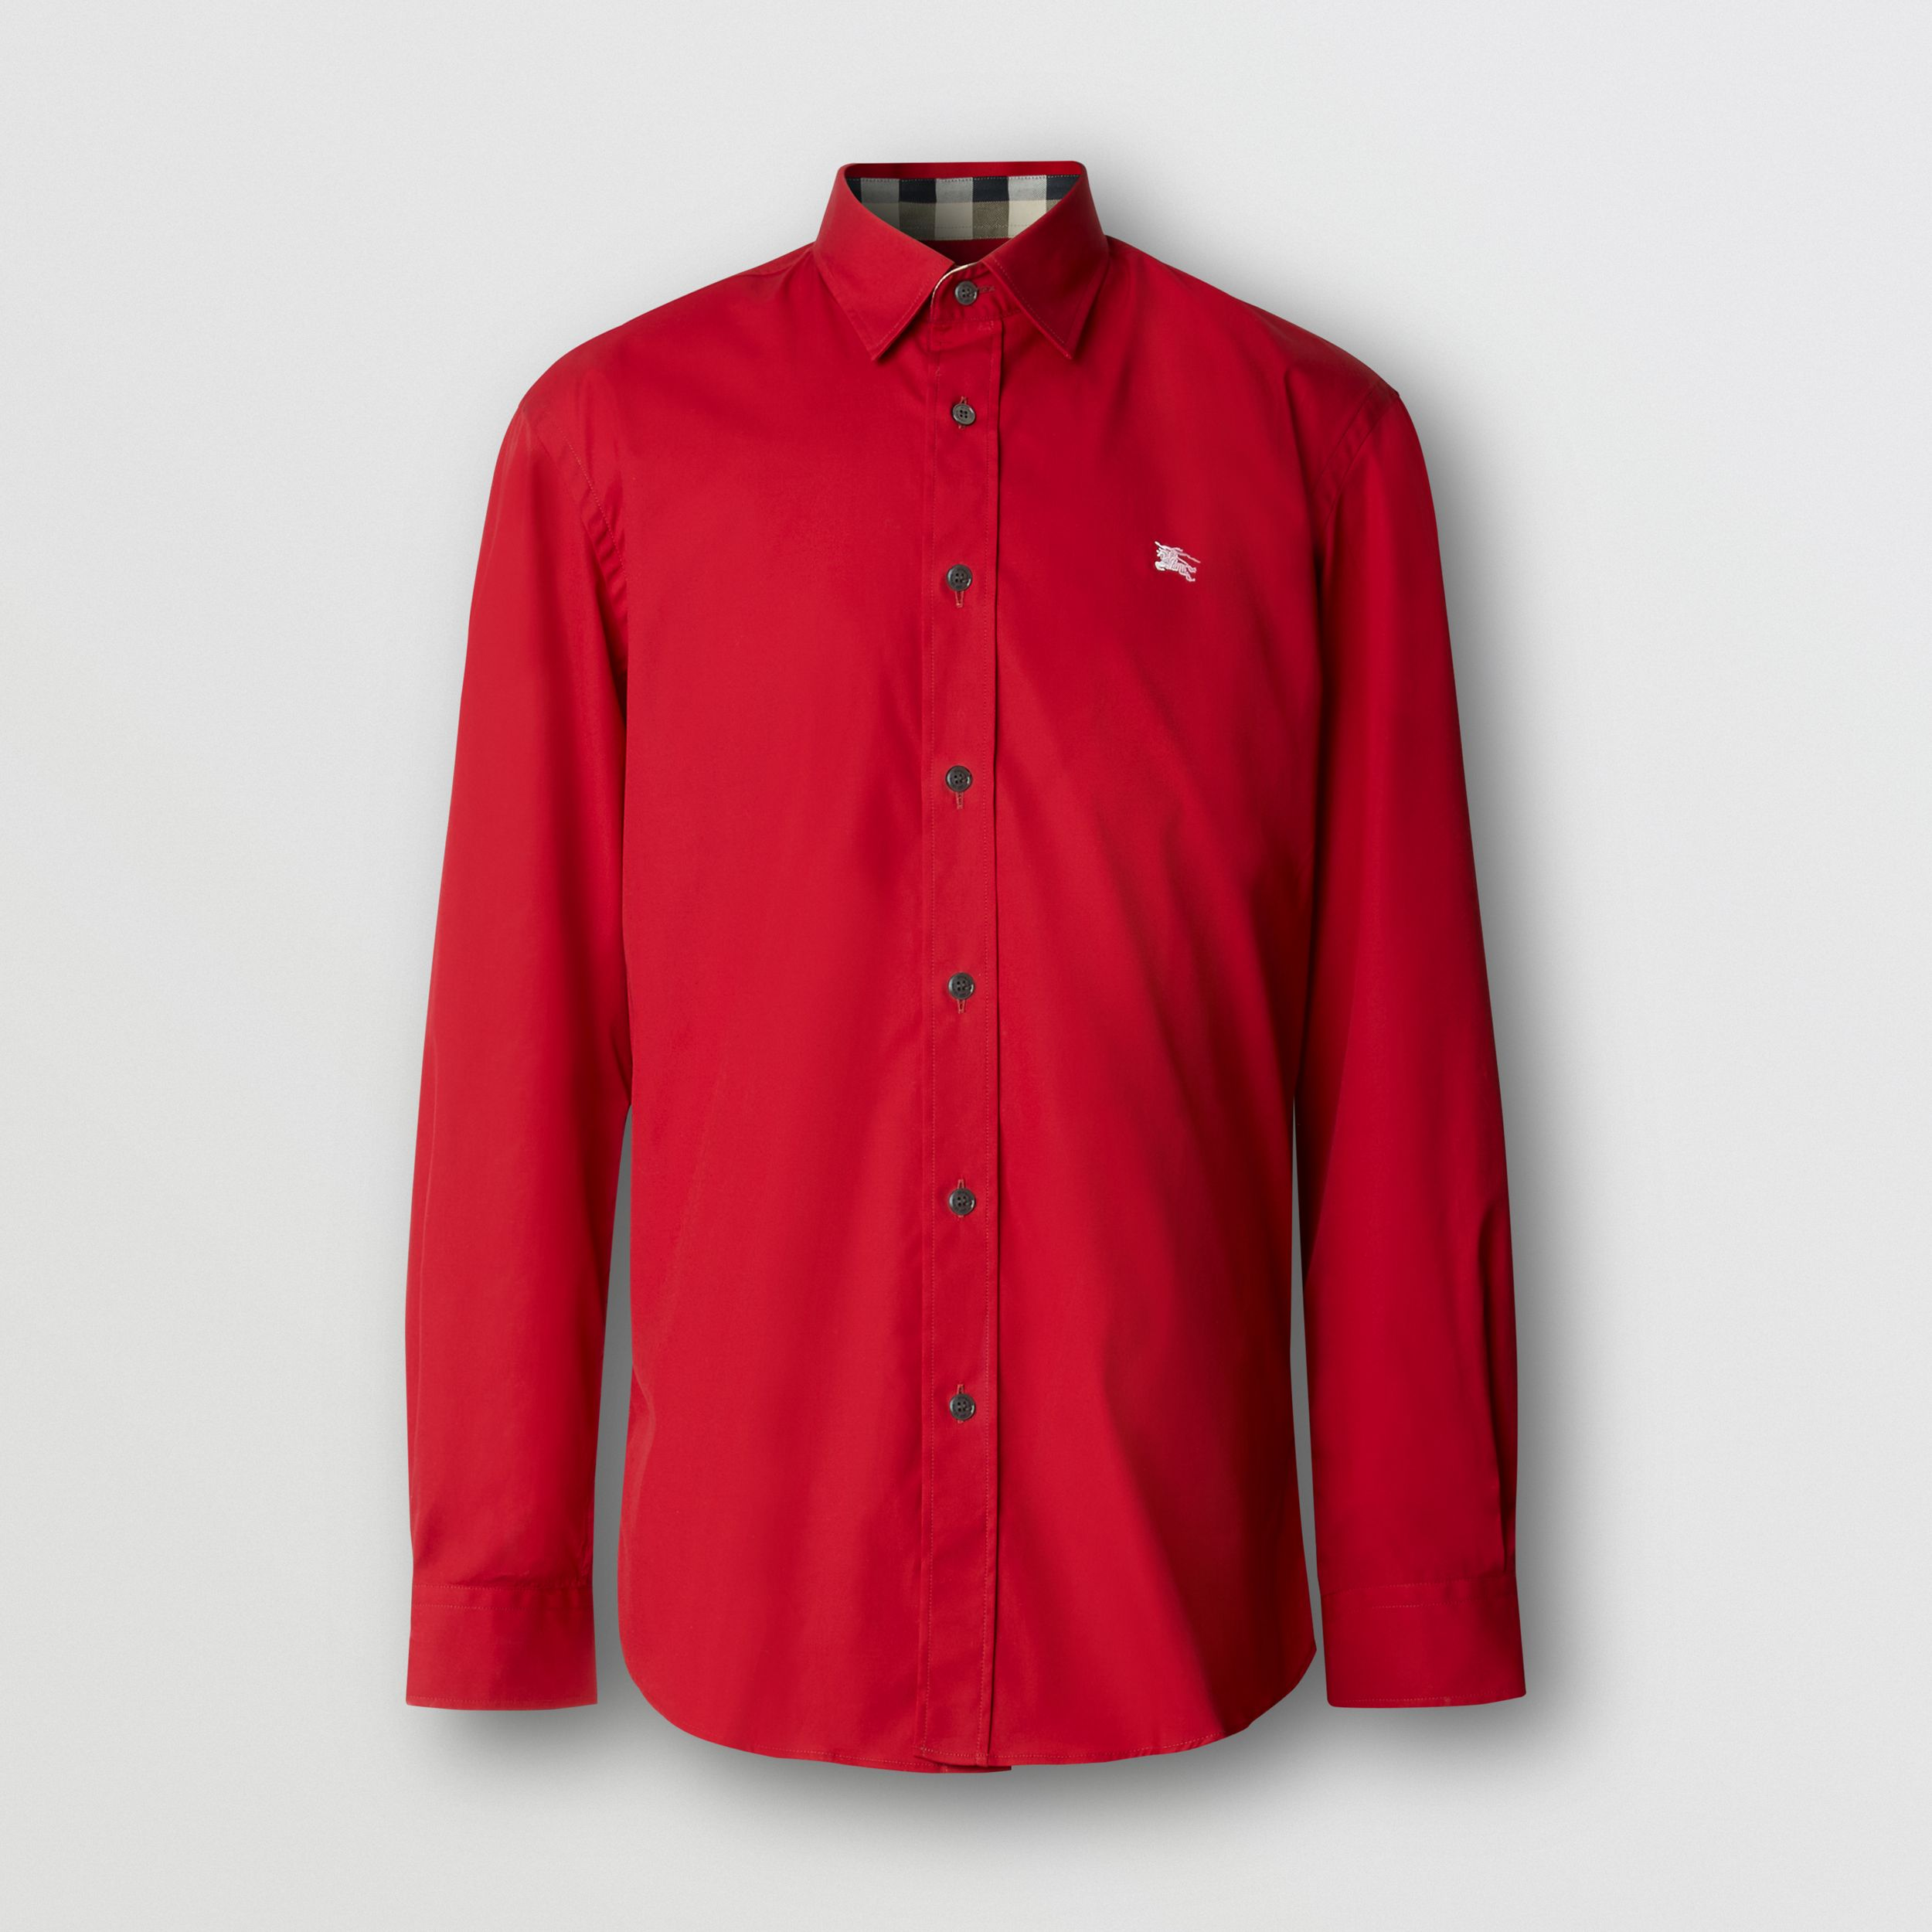 Embroidered EKD Stretch Cotton Poplin Shirt in Parade Red - Men | Burberry - 1